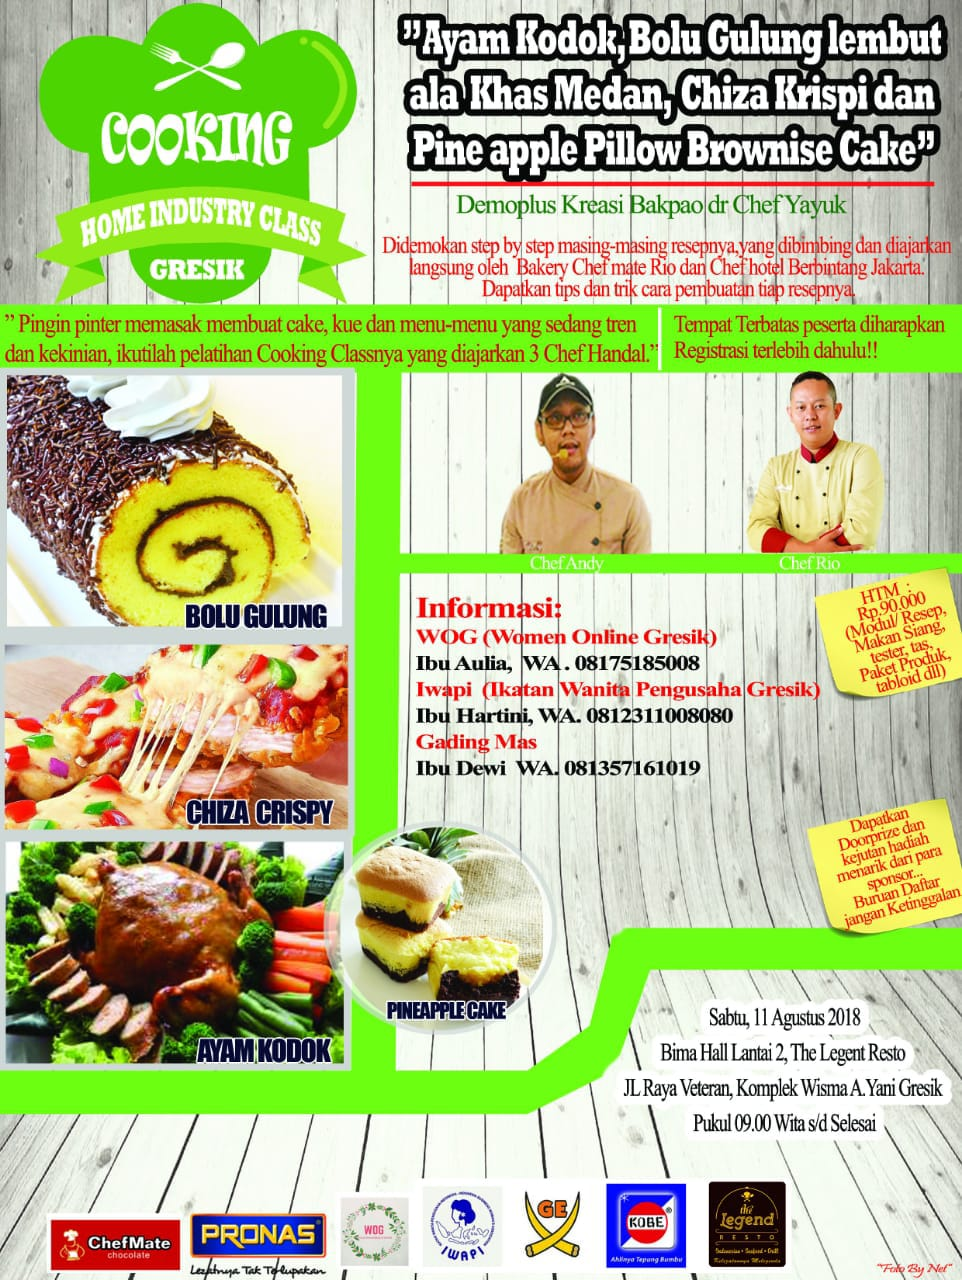 Cooking Home Industry Class Gresik